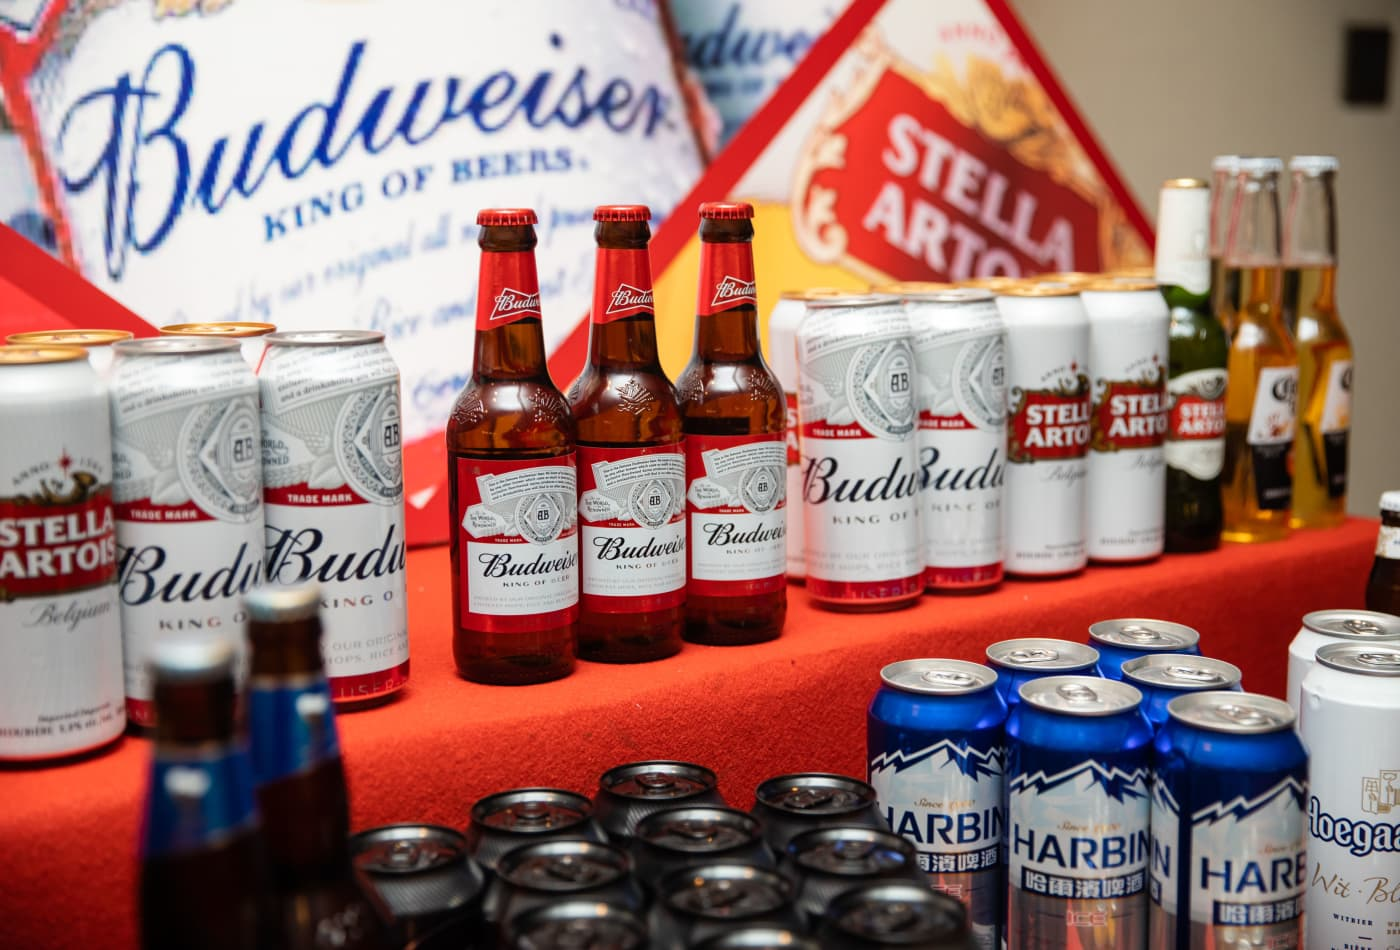 AB InBev just made $1 billion from innovation group ZX Ventures